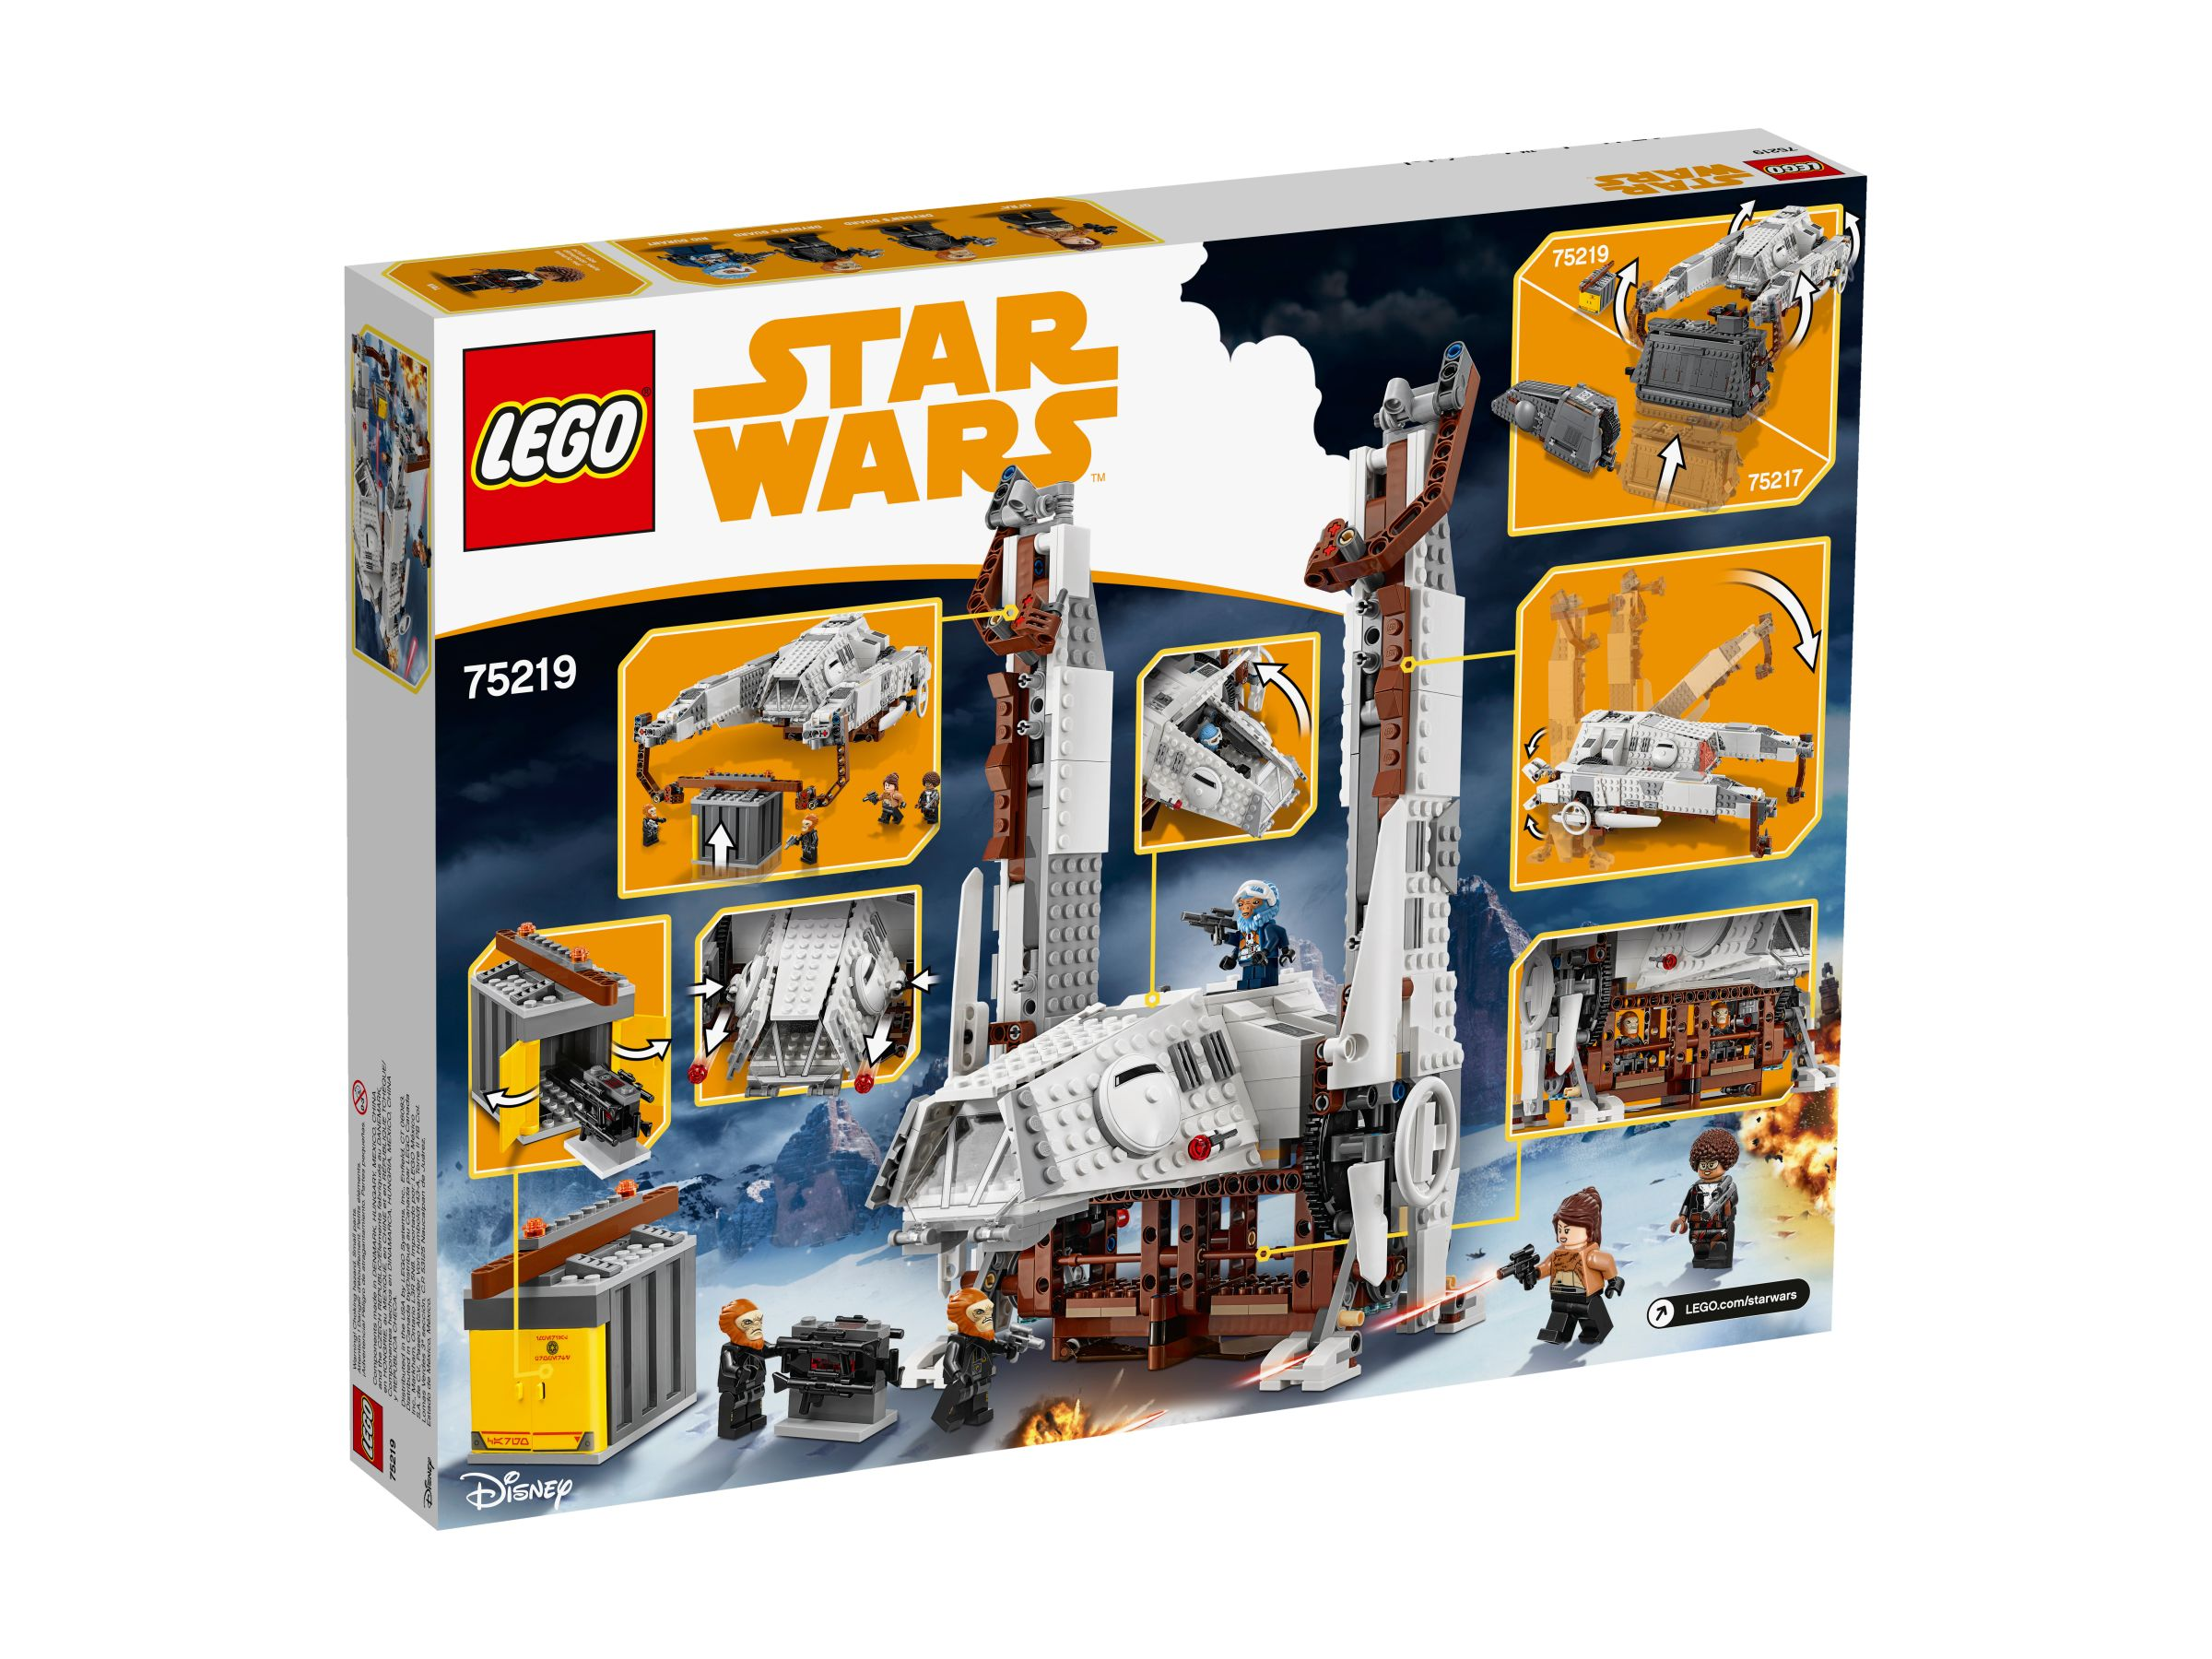 LEGO Star Wars 75219 Imperial AT-Hauler™ LEGO_75219_alt4.jpg